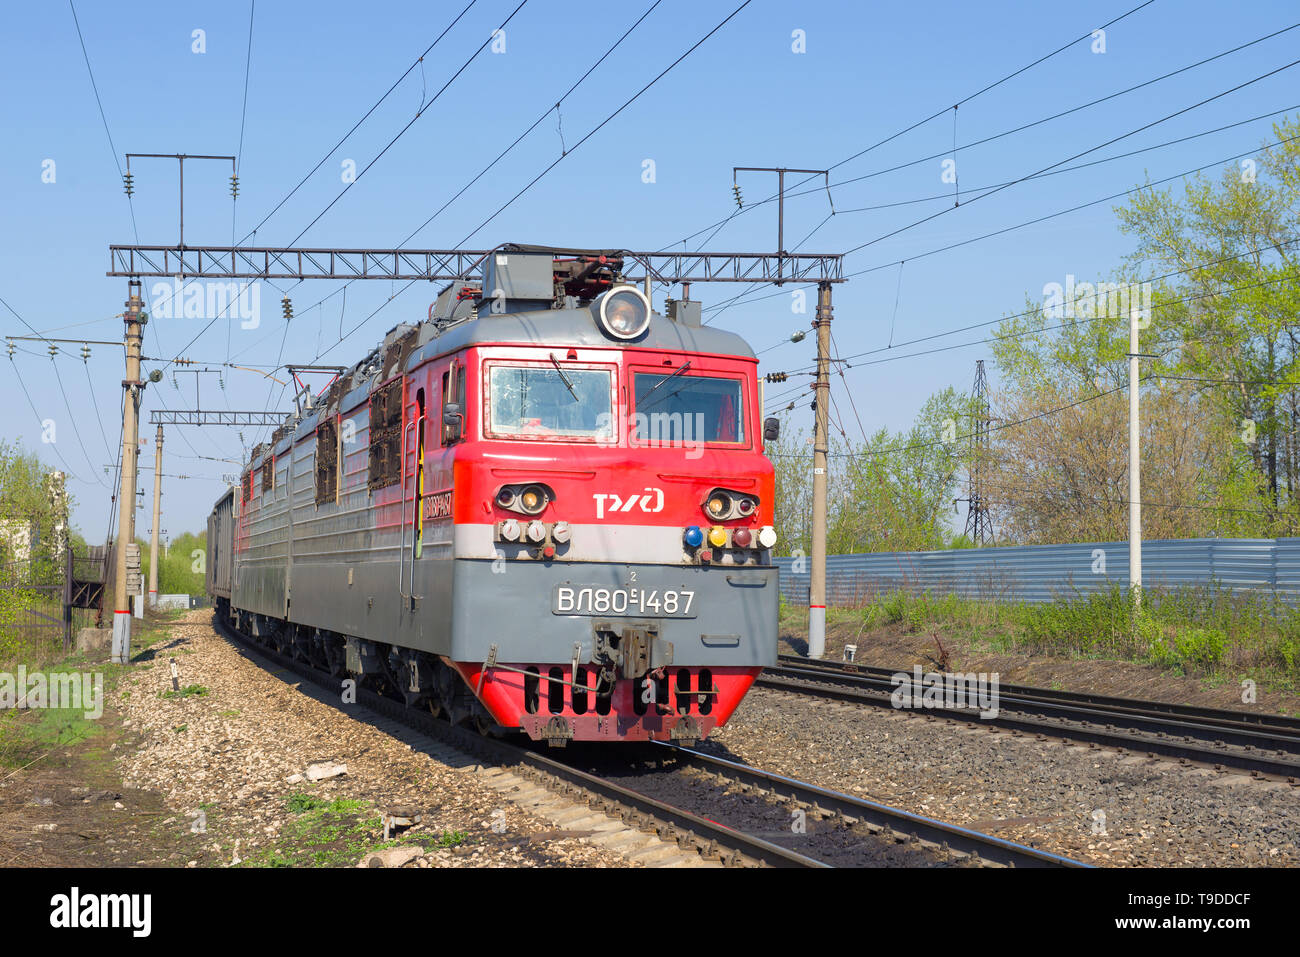 SHARYA, RUSSIA - MAY 09, 2019: Electric locomotive VL-80S close-up on a sunny May day - Stock Image